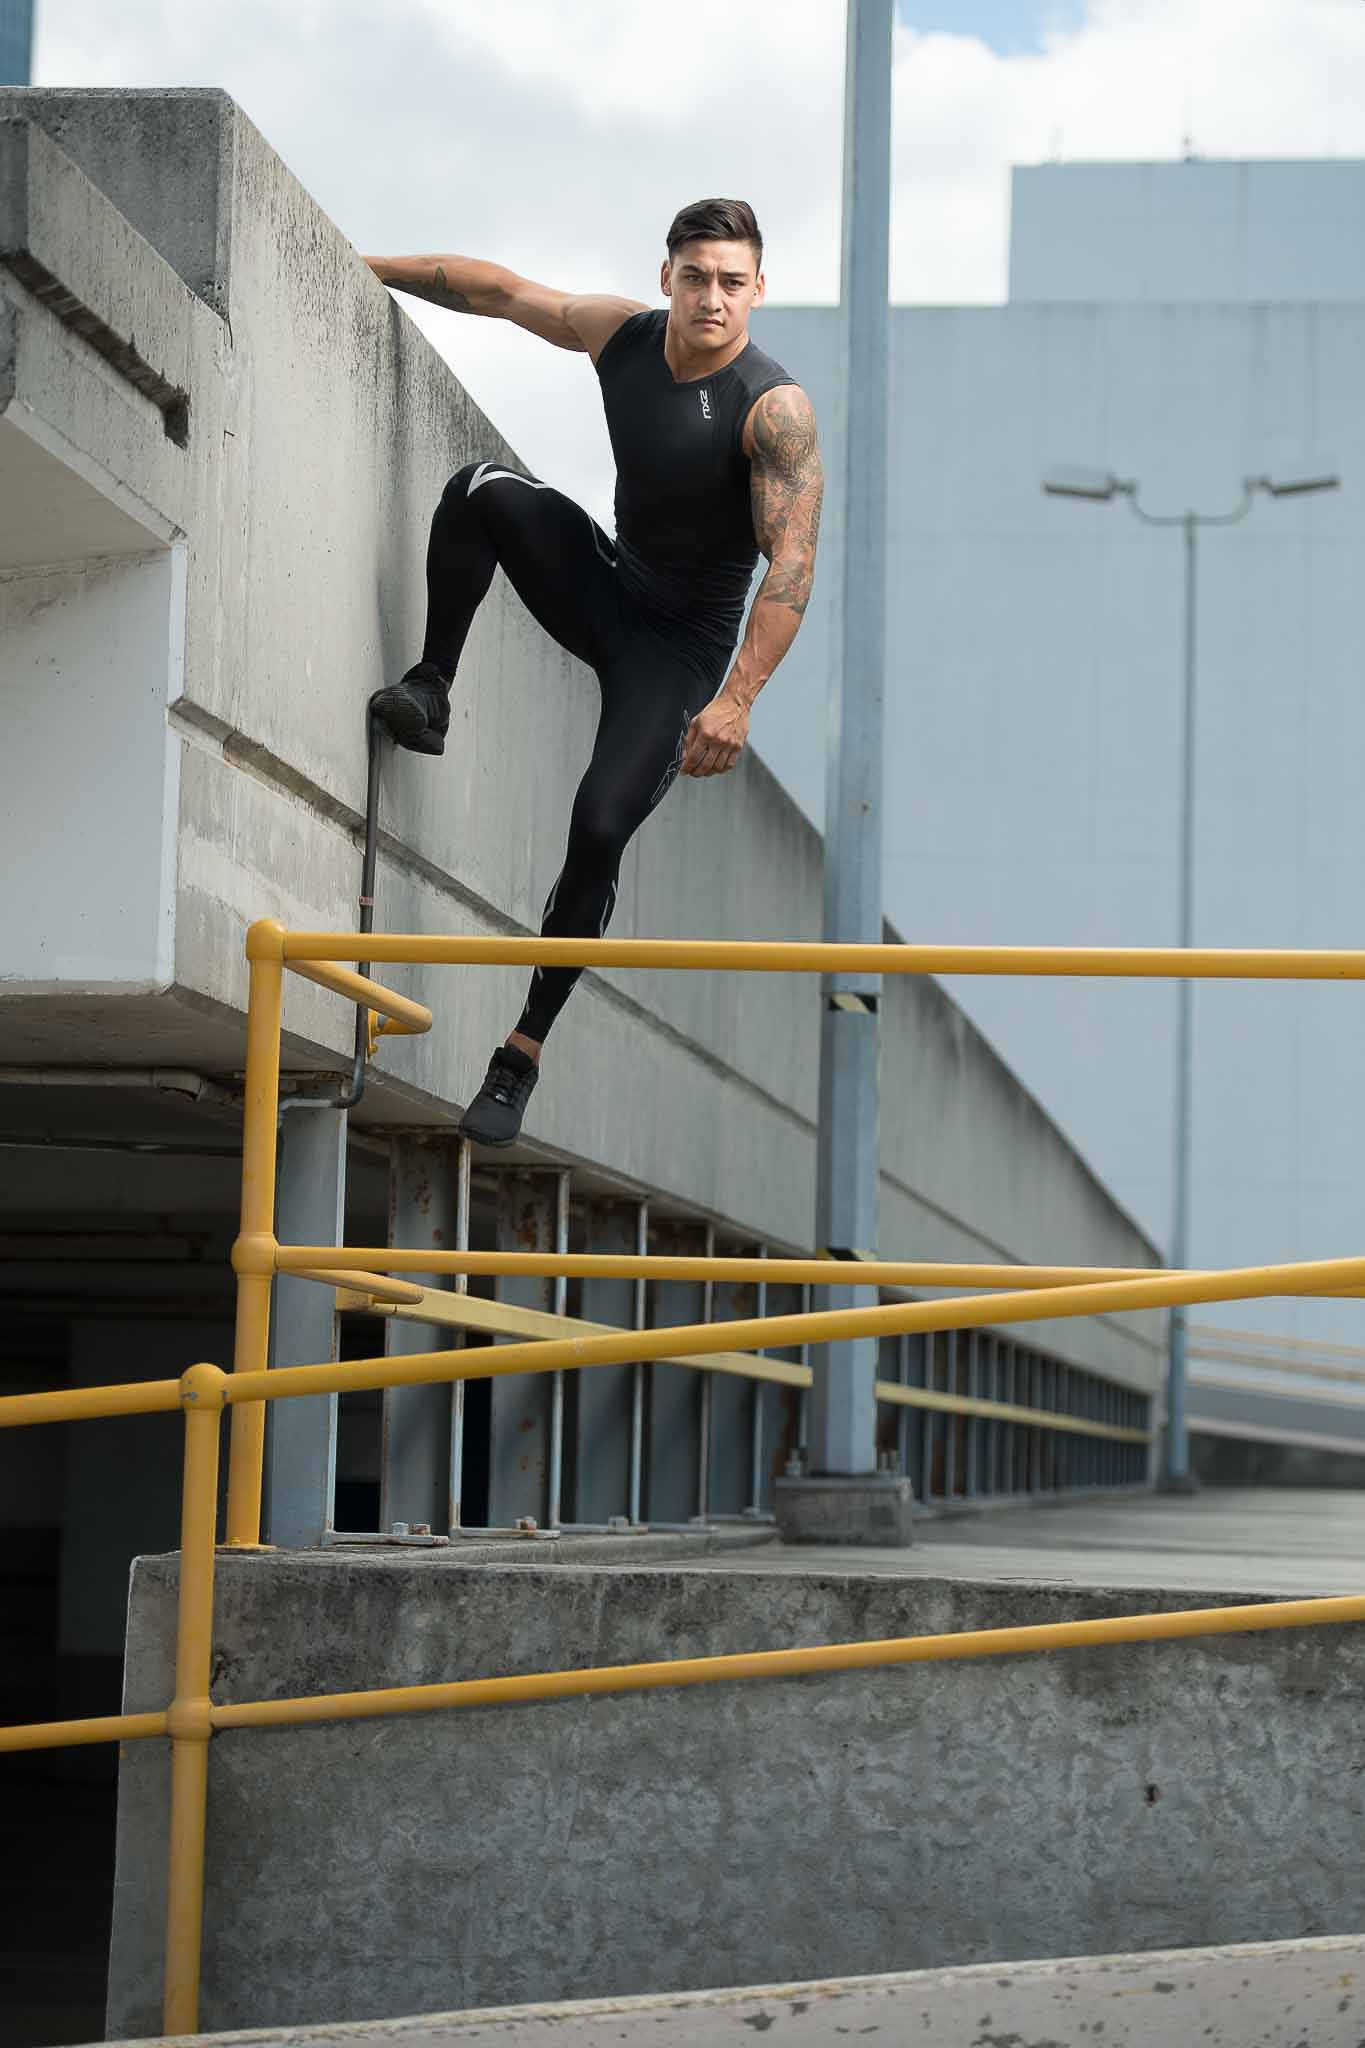 James hanging off the side of a carpark roof